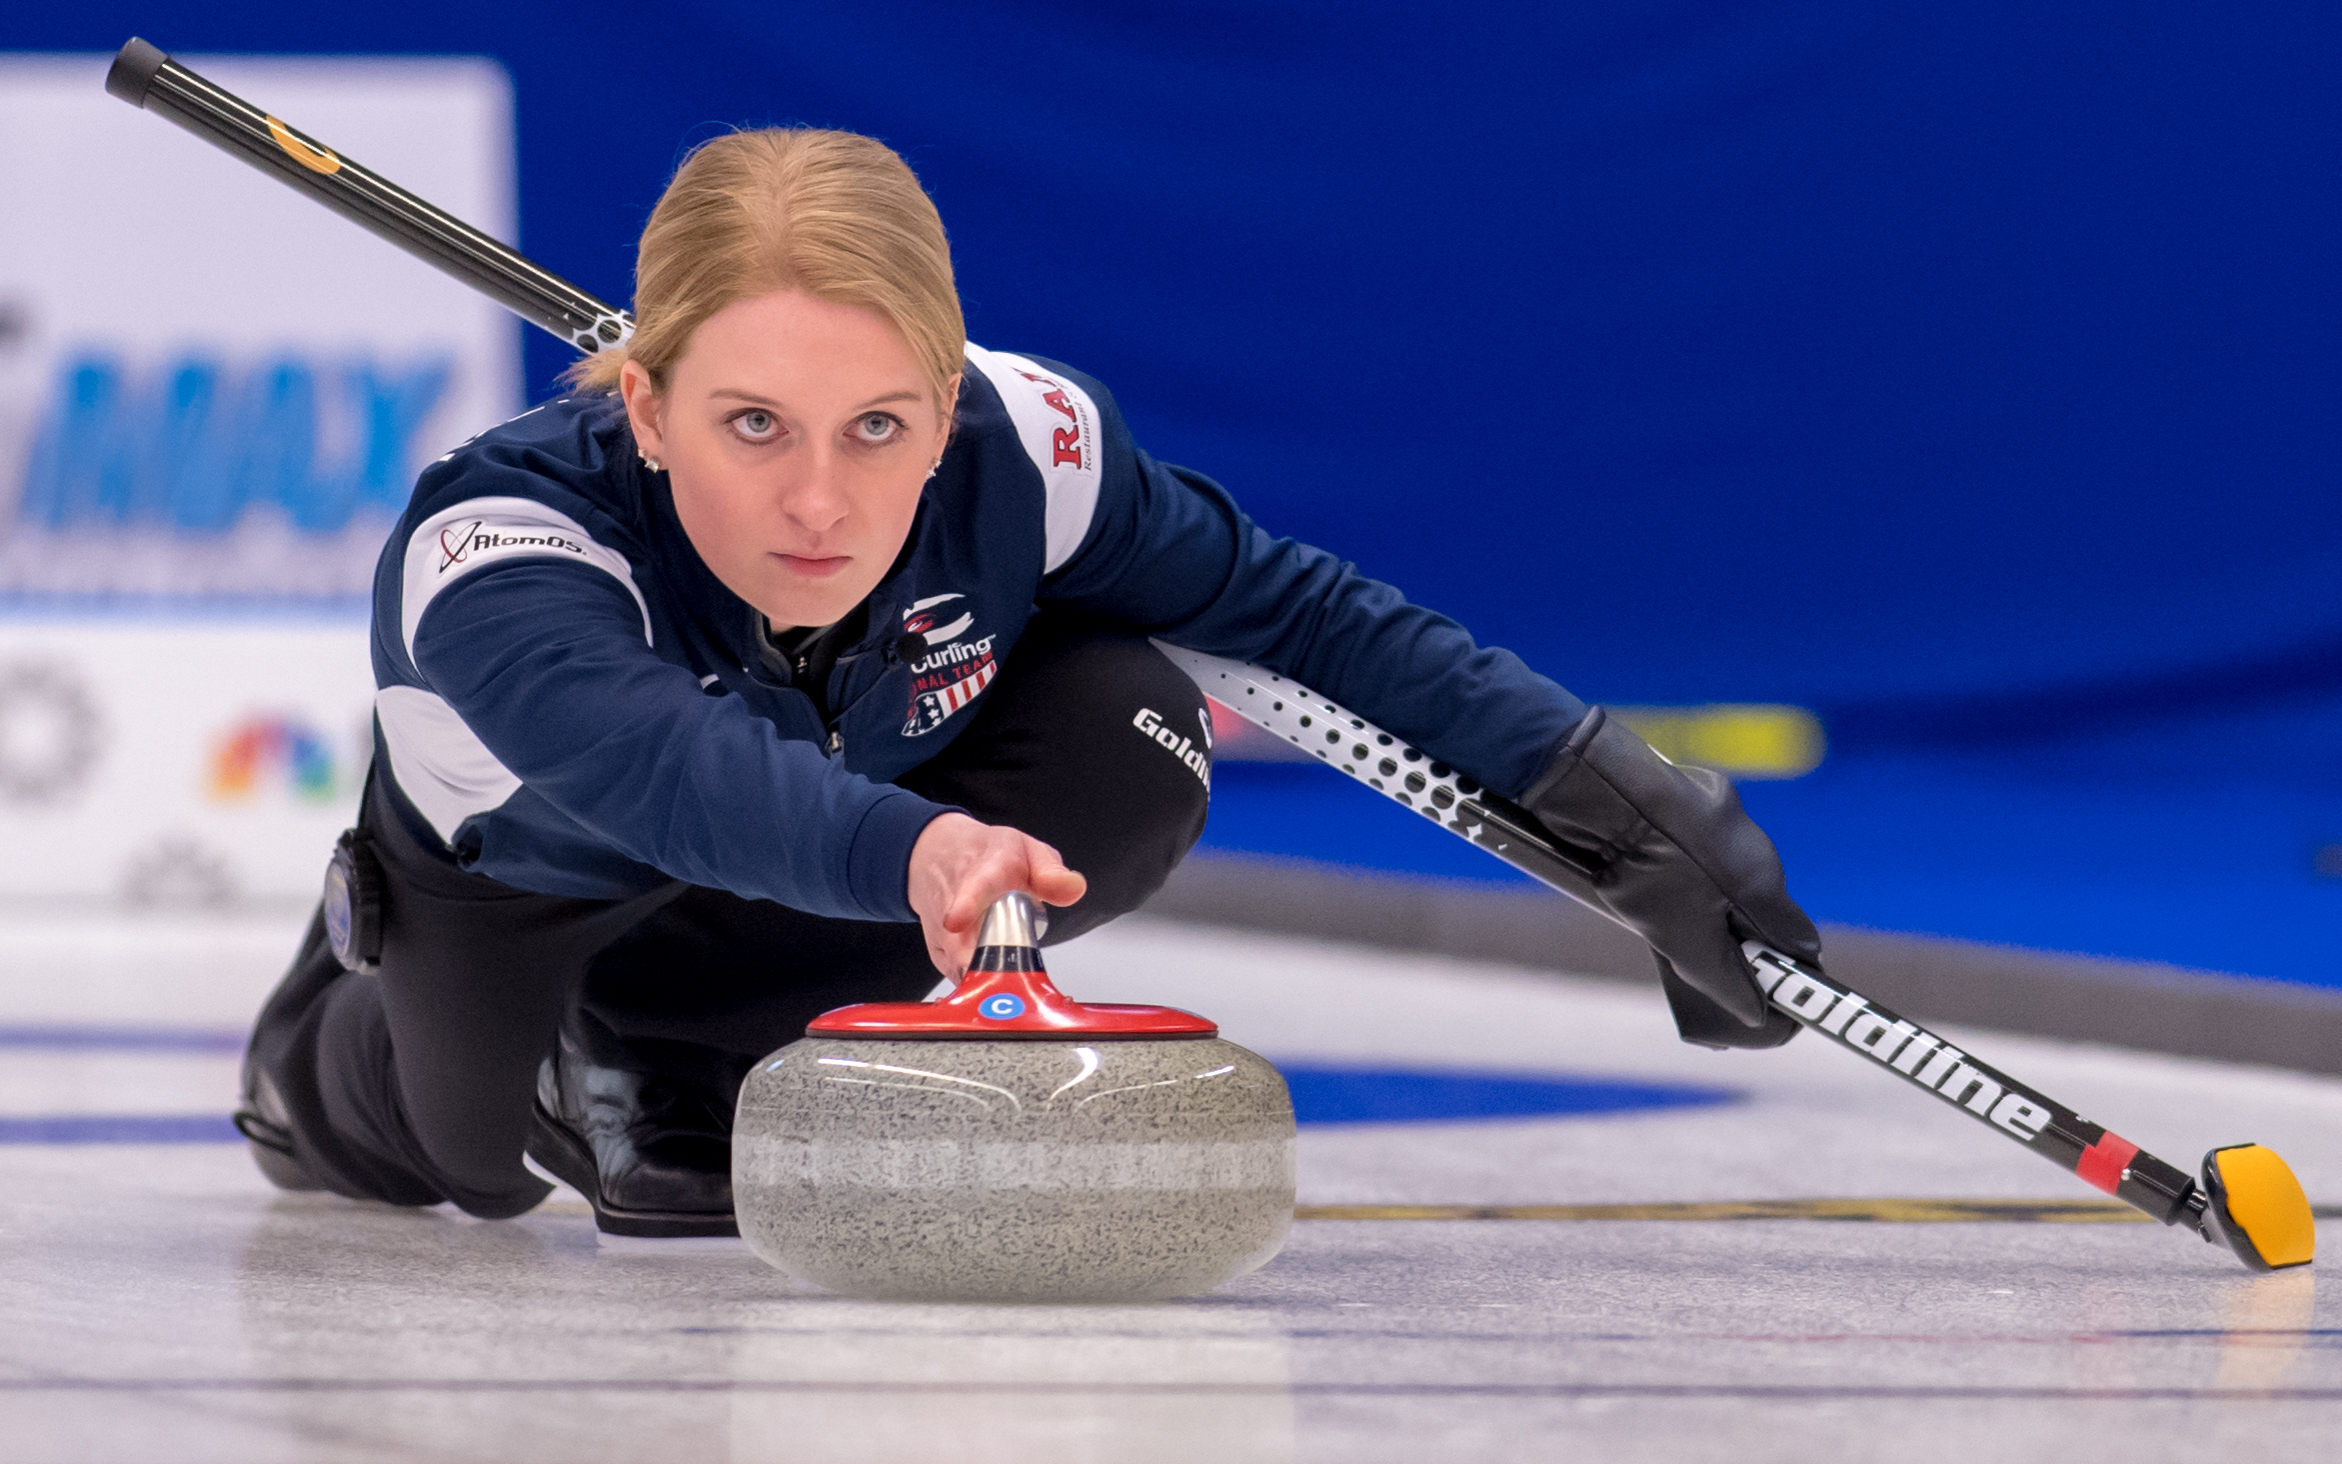 CHRISTENSEN SLIDES INTO USA CURLING NATIONALS FINAL